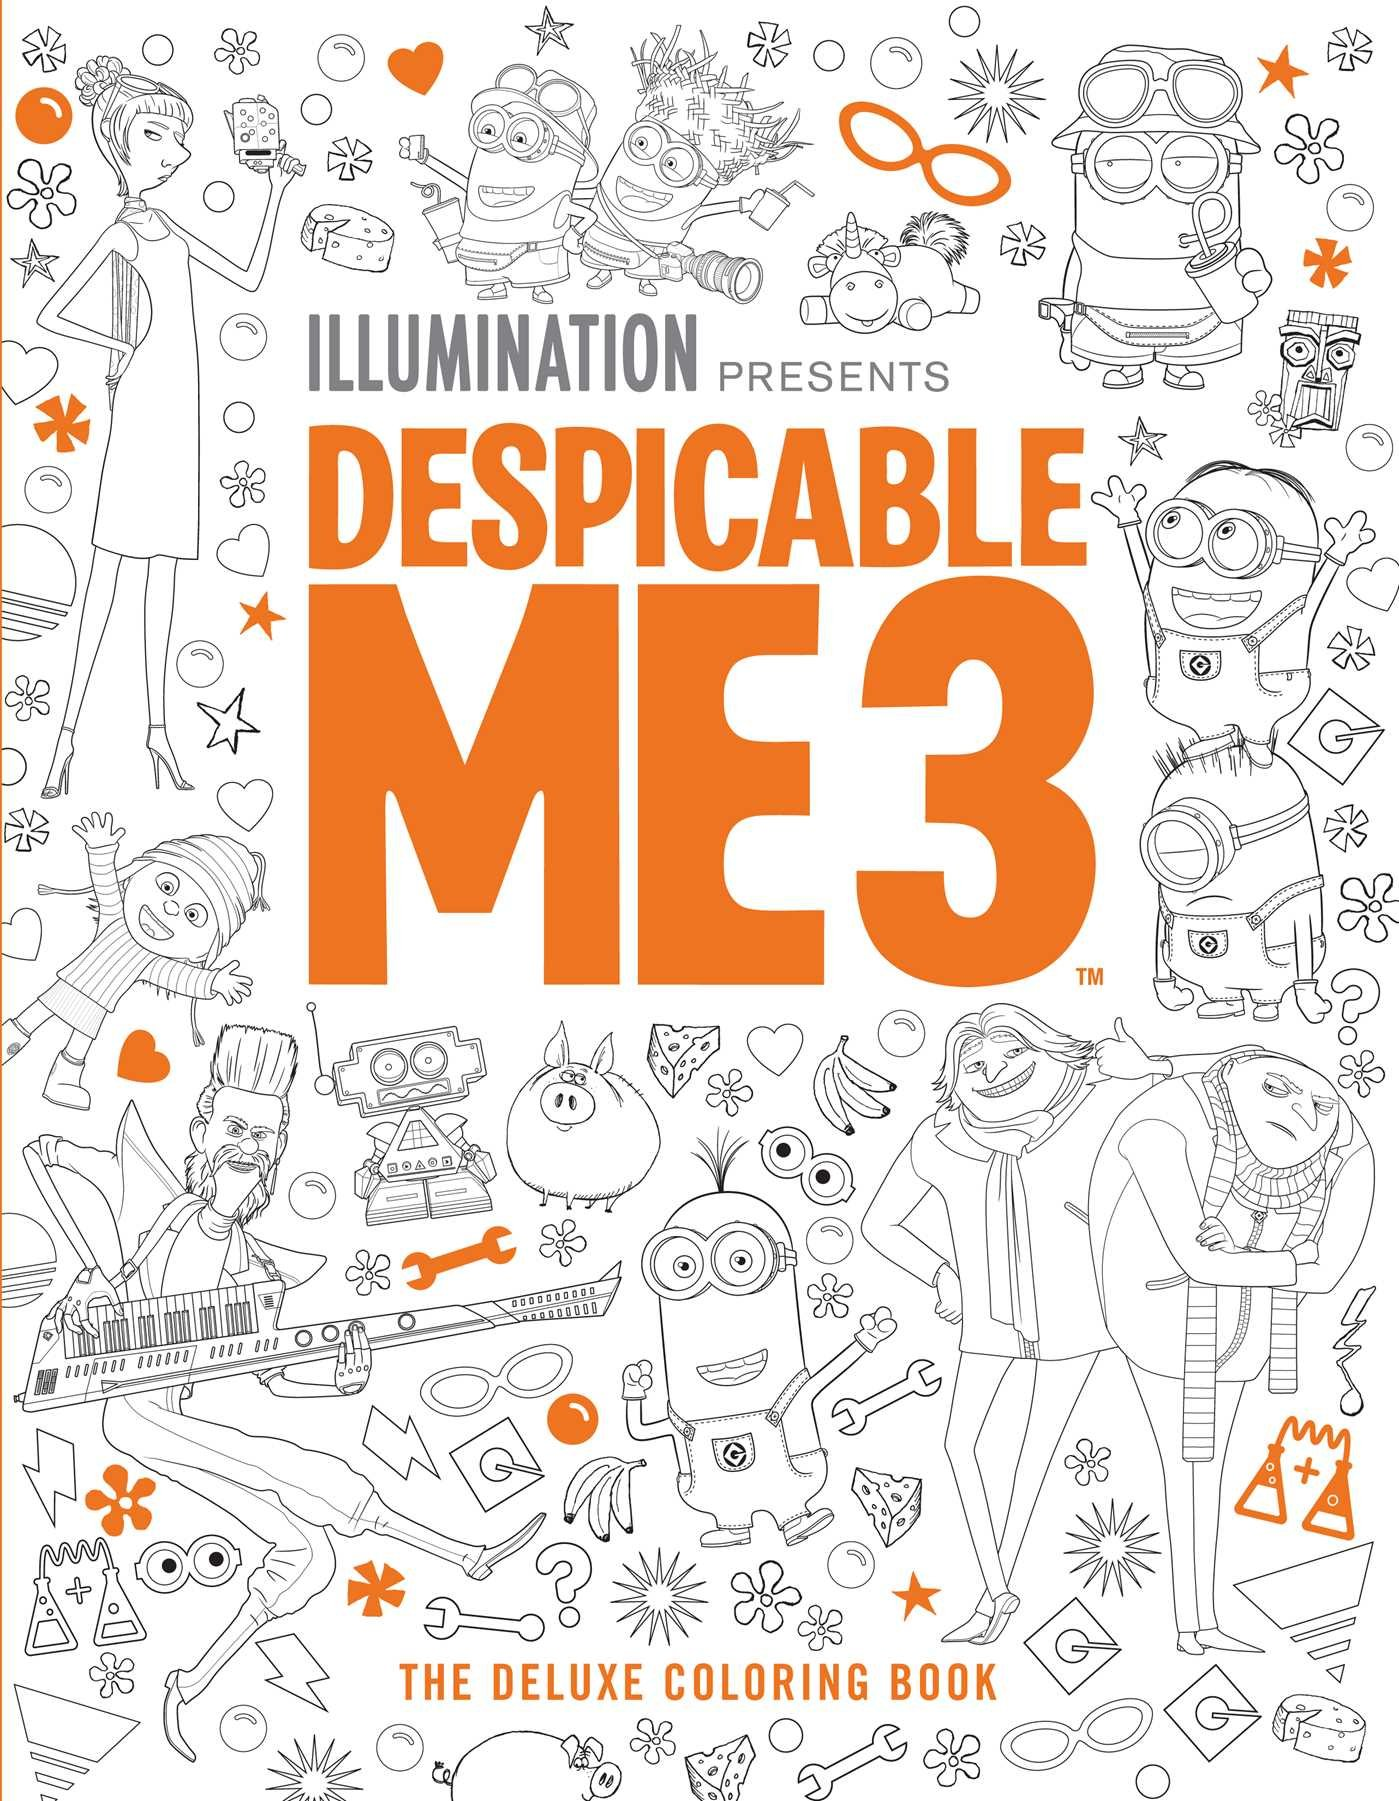 Amazon Despicable Me 3 The Deluxe Coloring Book 9781683830801 Insight Editions Books